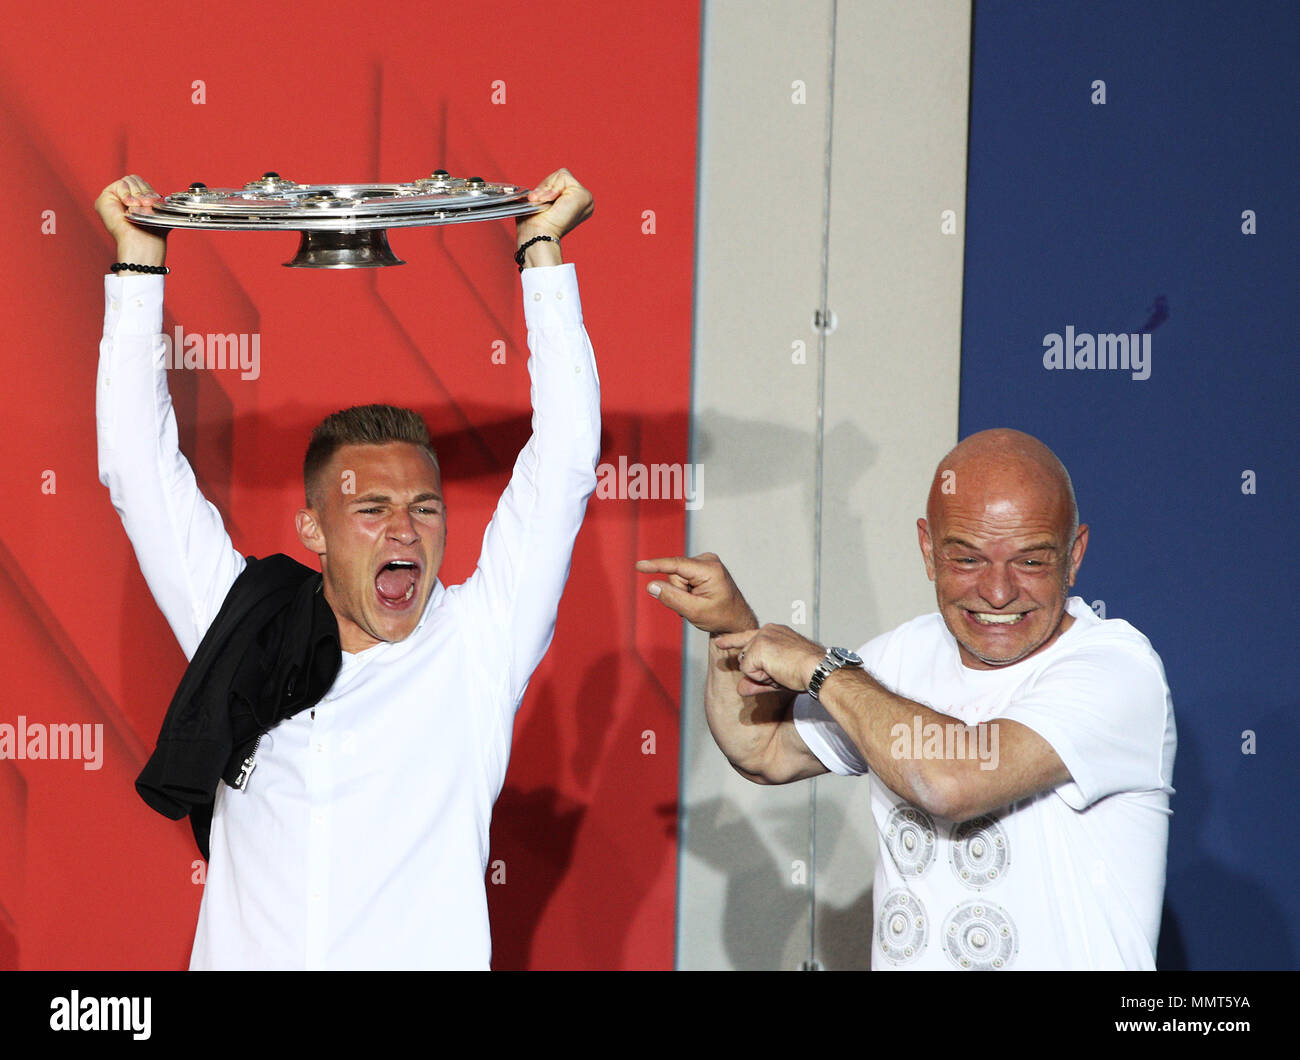 HANDOUT - 12 May 2018, Germany, Munich: Joshua Kimmich (L), player of FC Bayern Munich, celebrates winning the championship together with the fans at the Paulaner beer garden at the Nockherberg. Earlier though, a home defeat dampened the joy over the 28th championship title. Photo: Adam Pretty/FCB/Getty Images /dpa - ATTENTION: editorial use only and only if the credit mentioned above is referenced in full Credit: dpa picture alliance/Alamy Live News Stock Photo